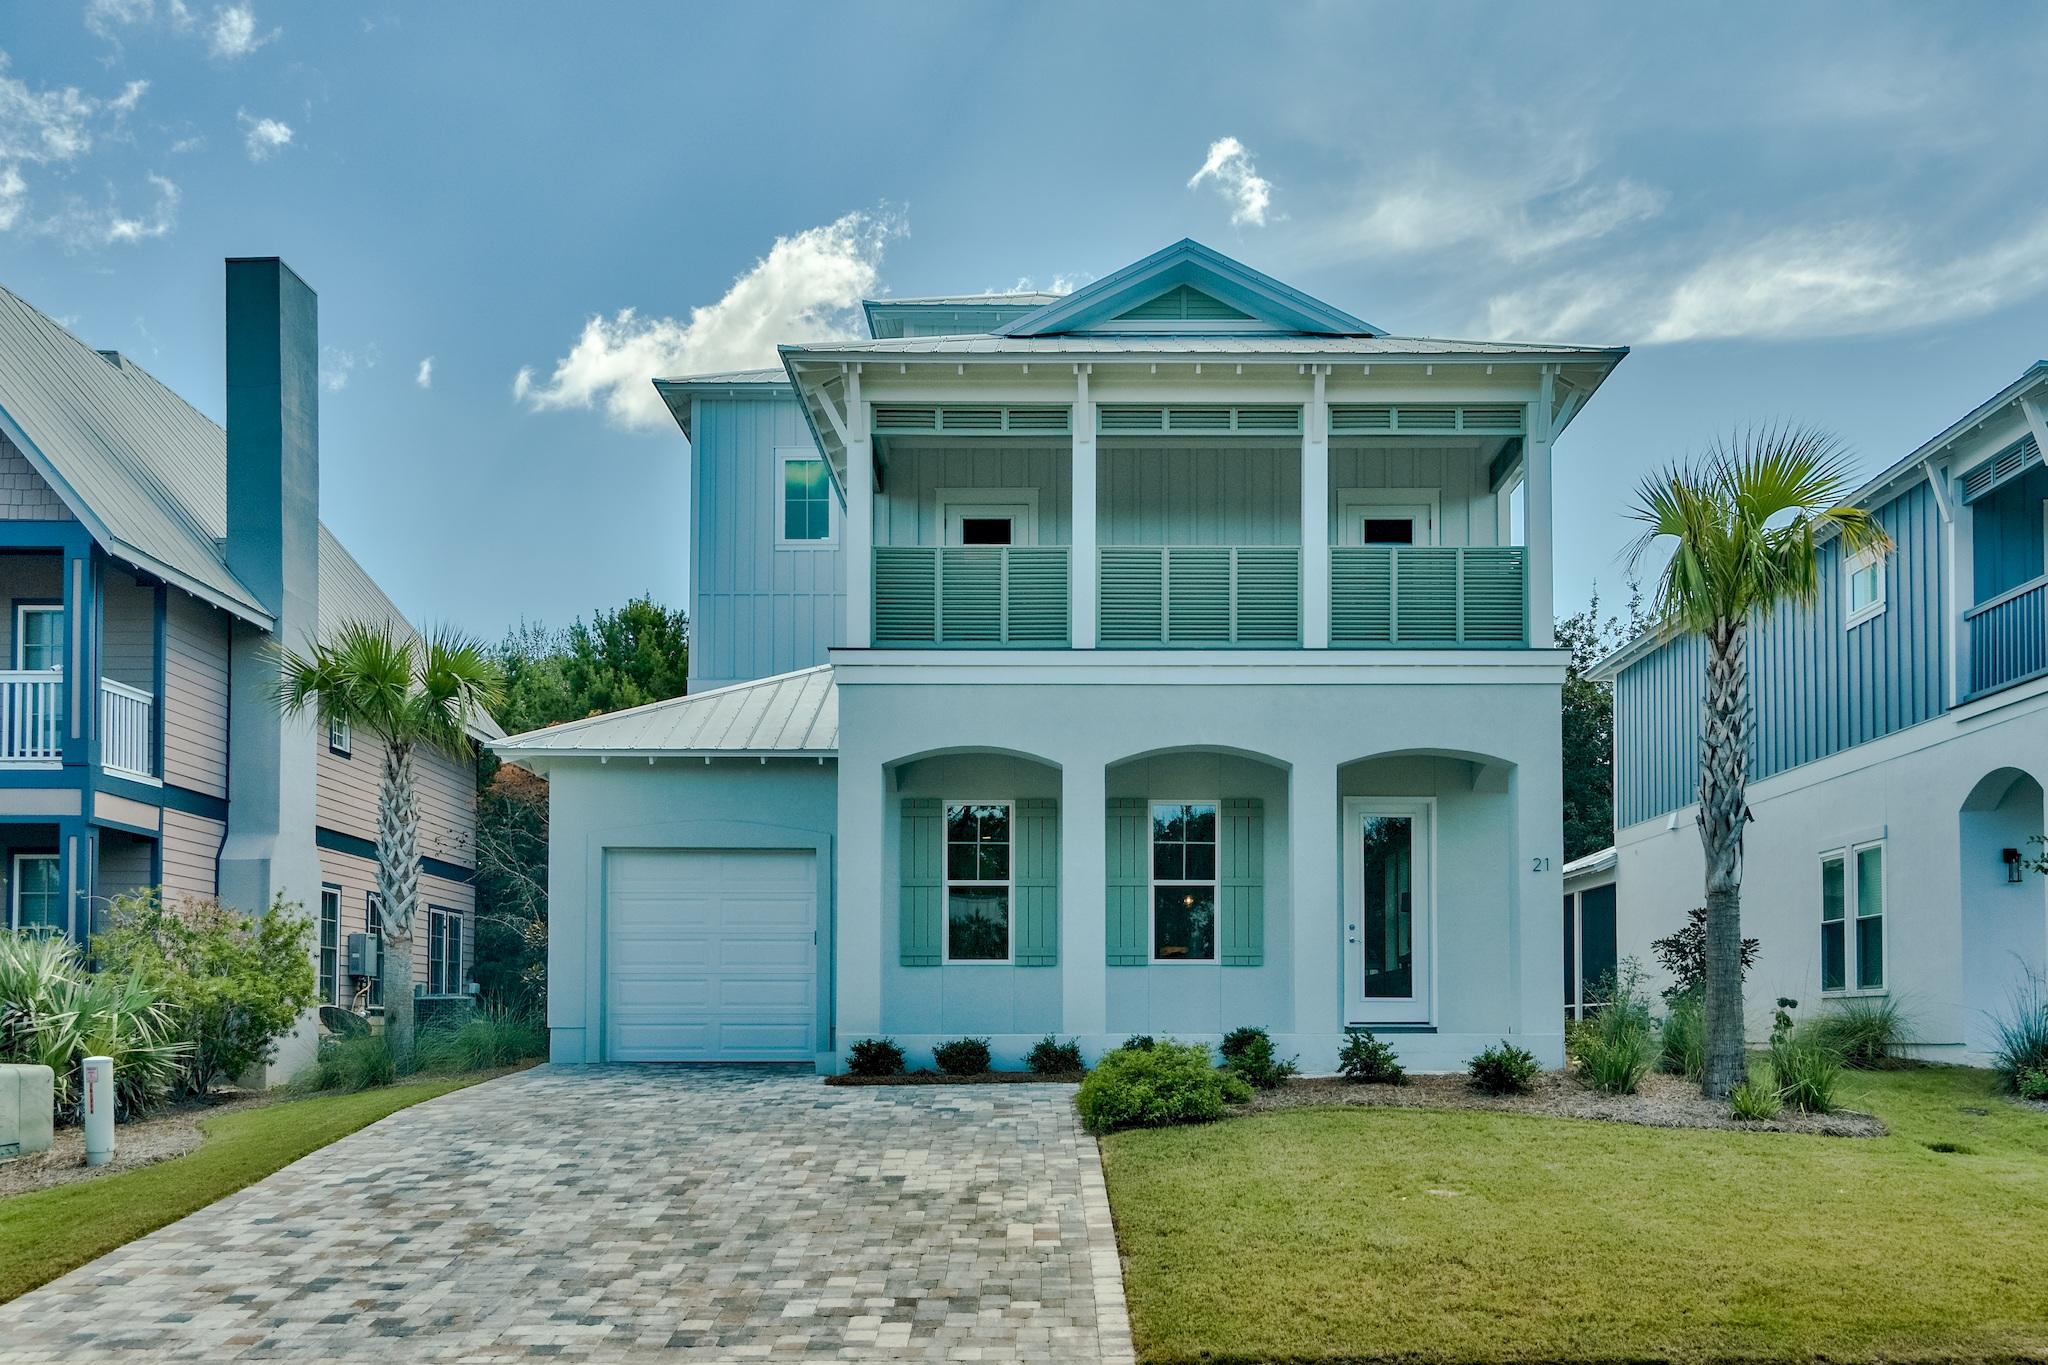 Photo of home for sale at 21 Willow Mist, Inlet Beach FL